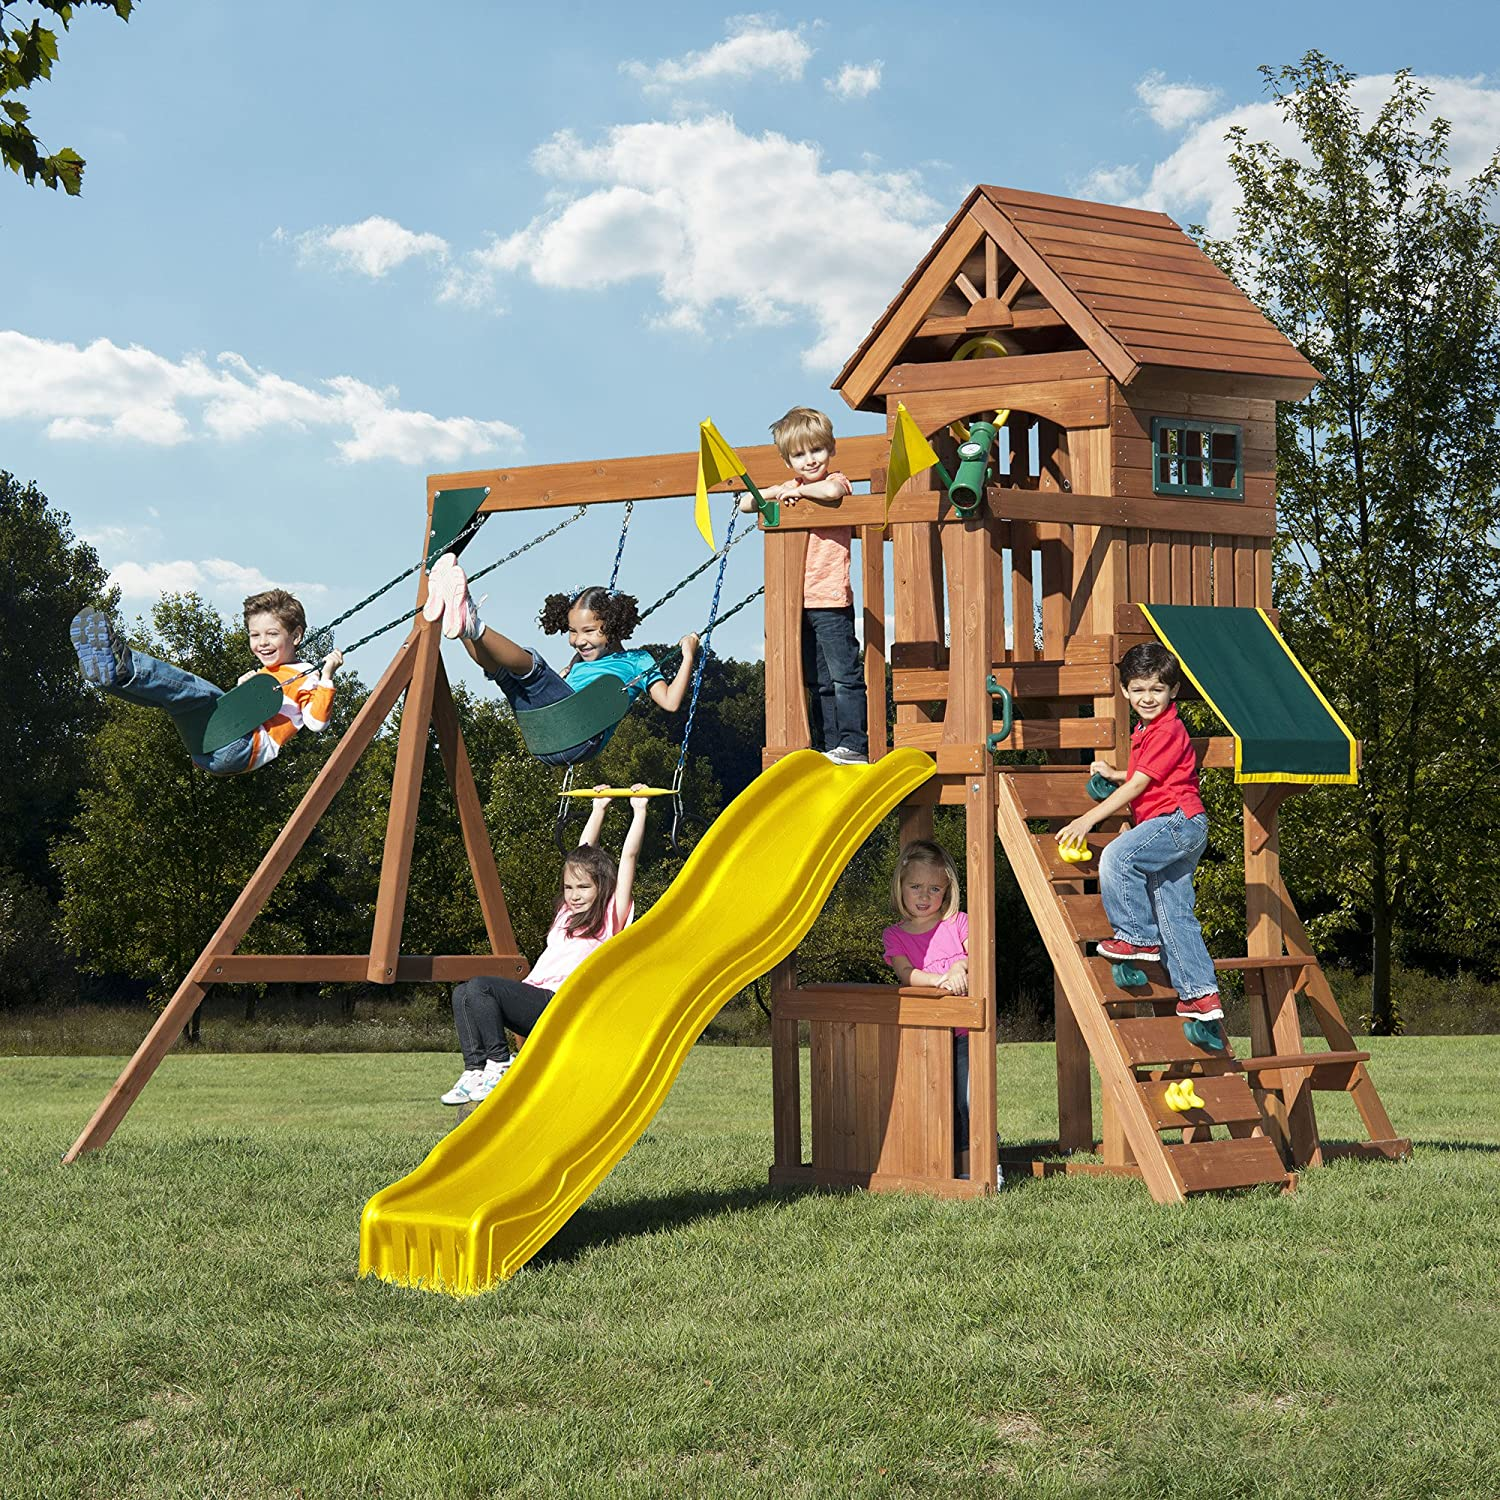 The Best Swing Set 2